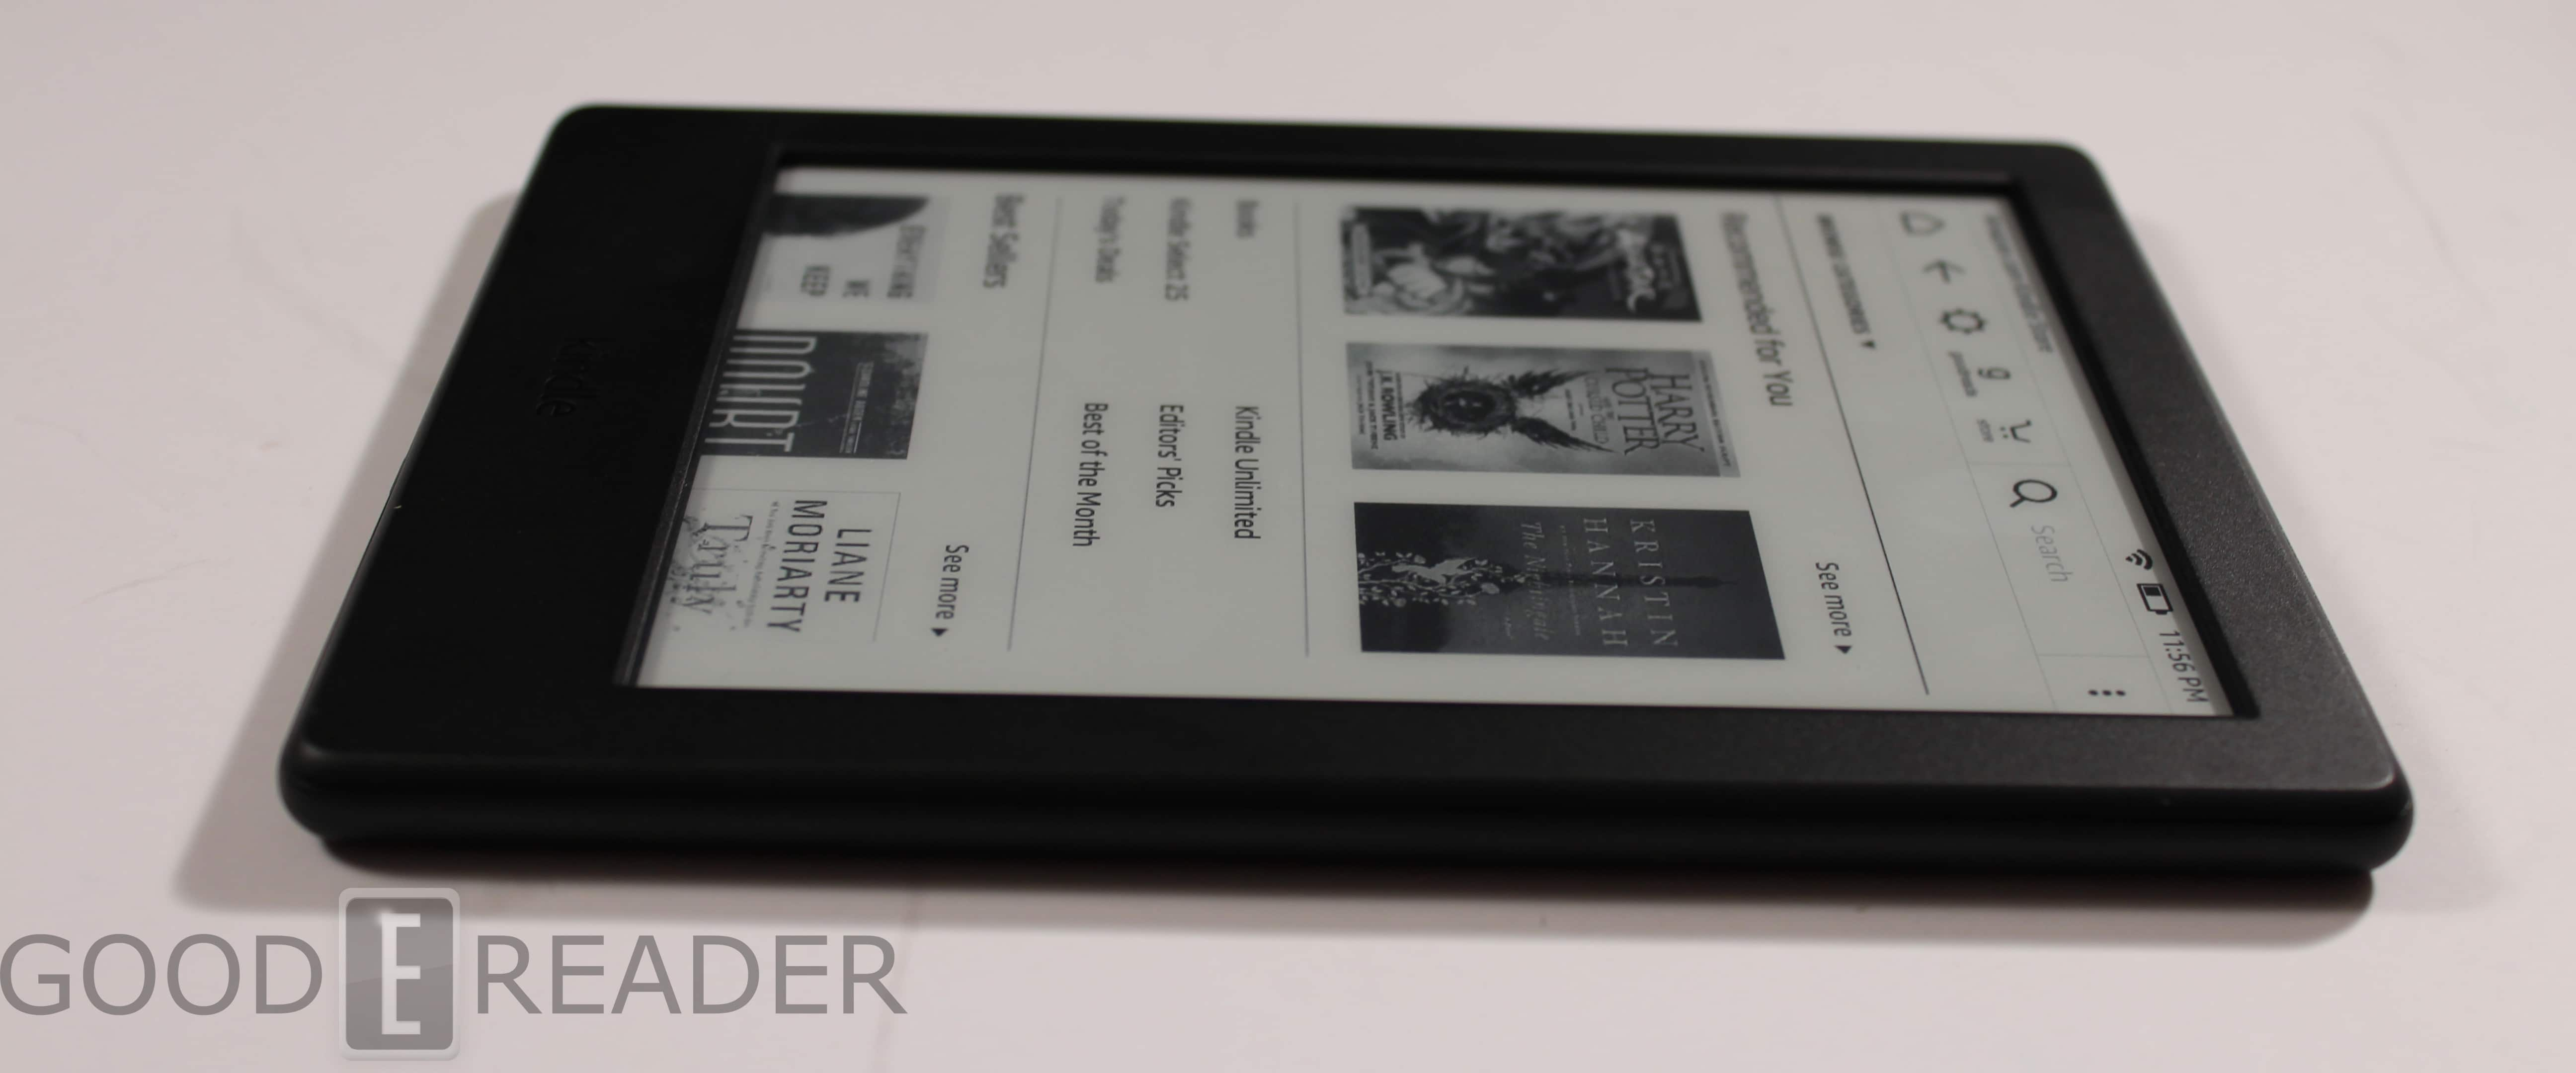 Amazon Kindle 8th Generation 2016 Review - photo#26